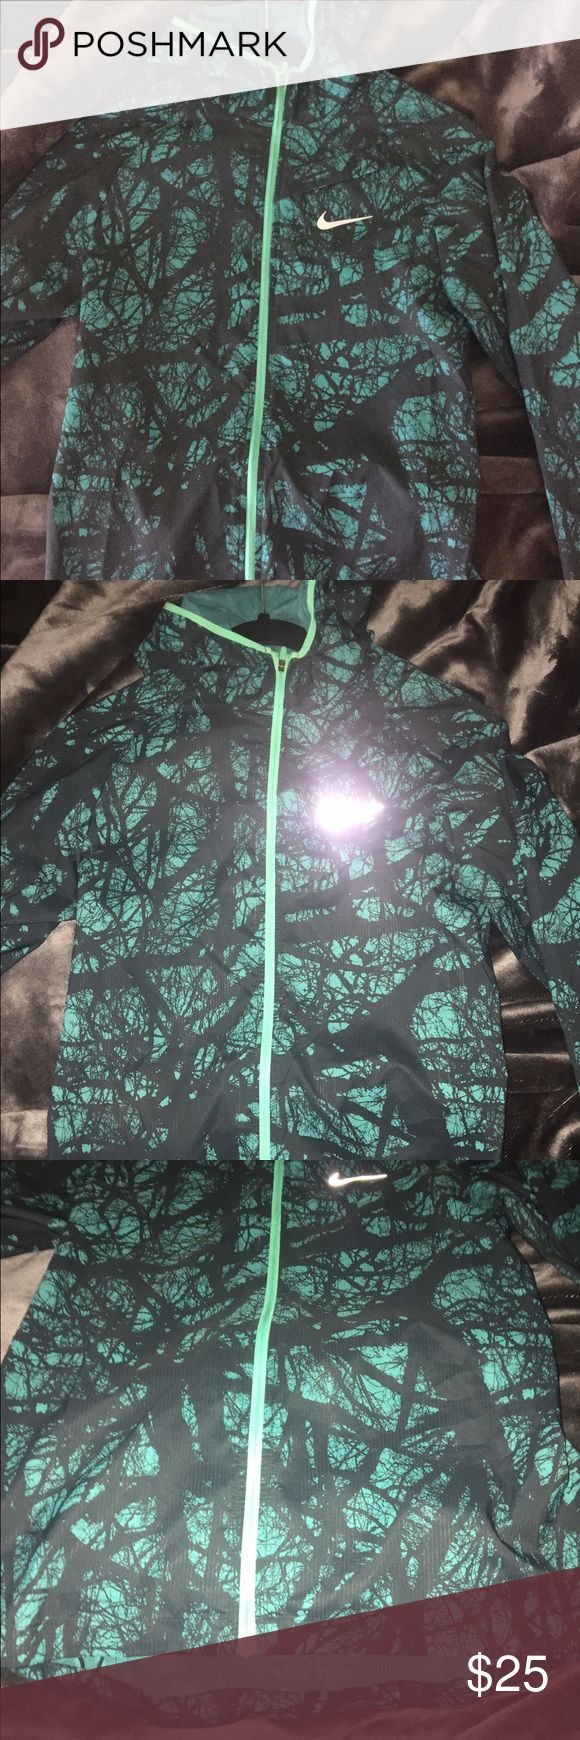 Women's Nike jacket! Light-weight Blue, green nice light running/ leisure jacket! Never worn and in perfect condition! Super comfy and light Nike Jackets & Coats